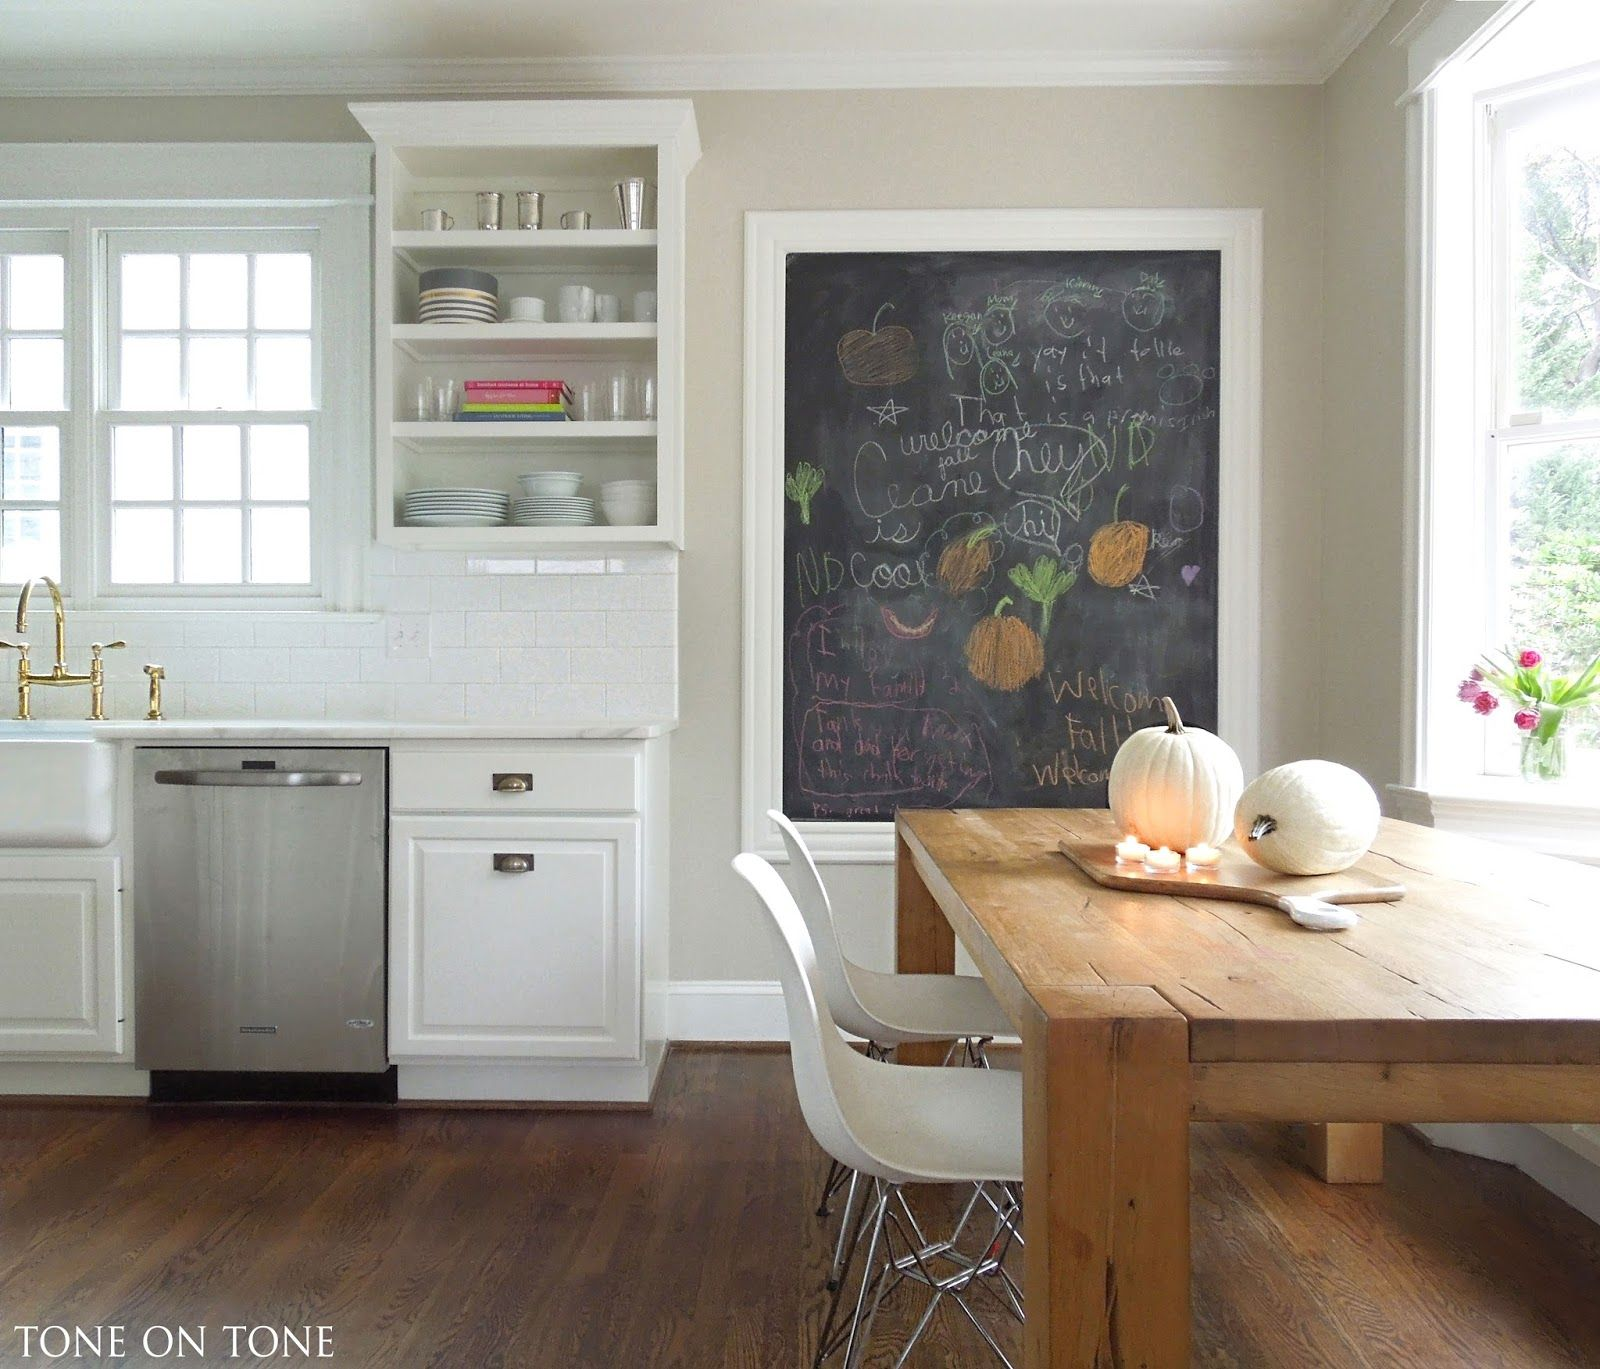 Colors For Kitchen Walls With White Cabinets Cabinets Painted Bm Simply White Wall Behind Island Is